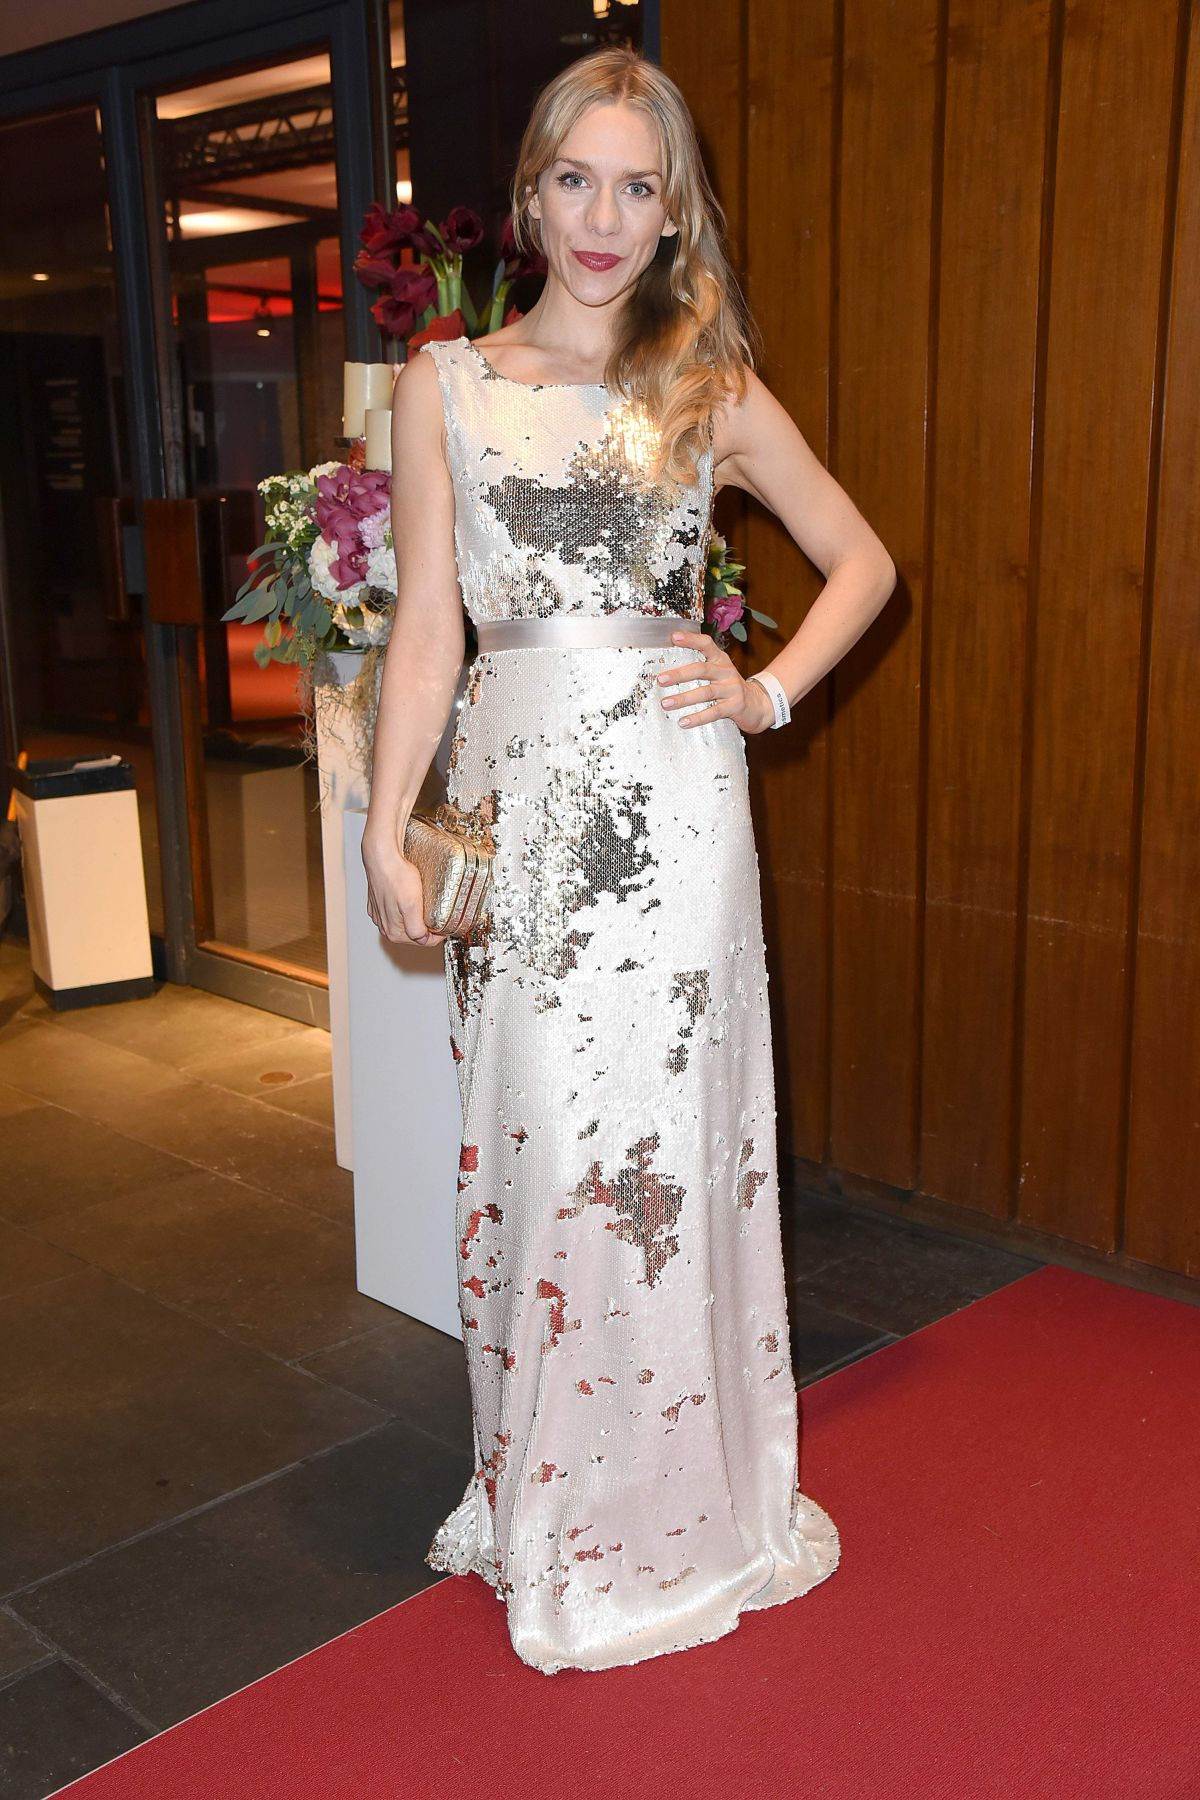 JULIA DIETZE at 23rd Opera Gala Event in Berlin 11/05/2016